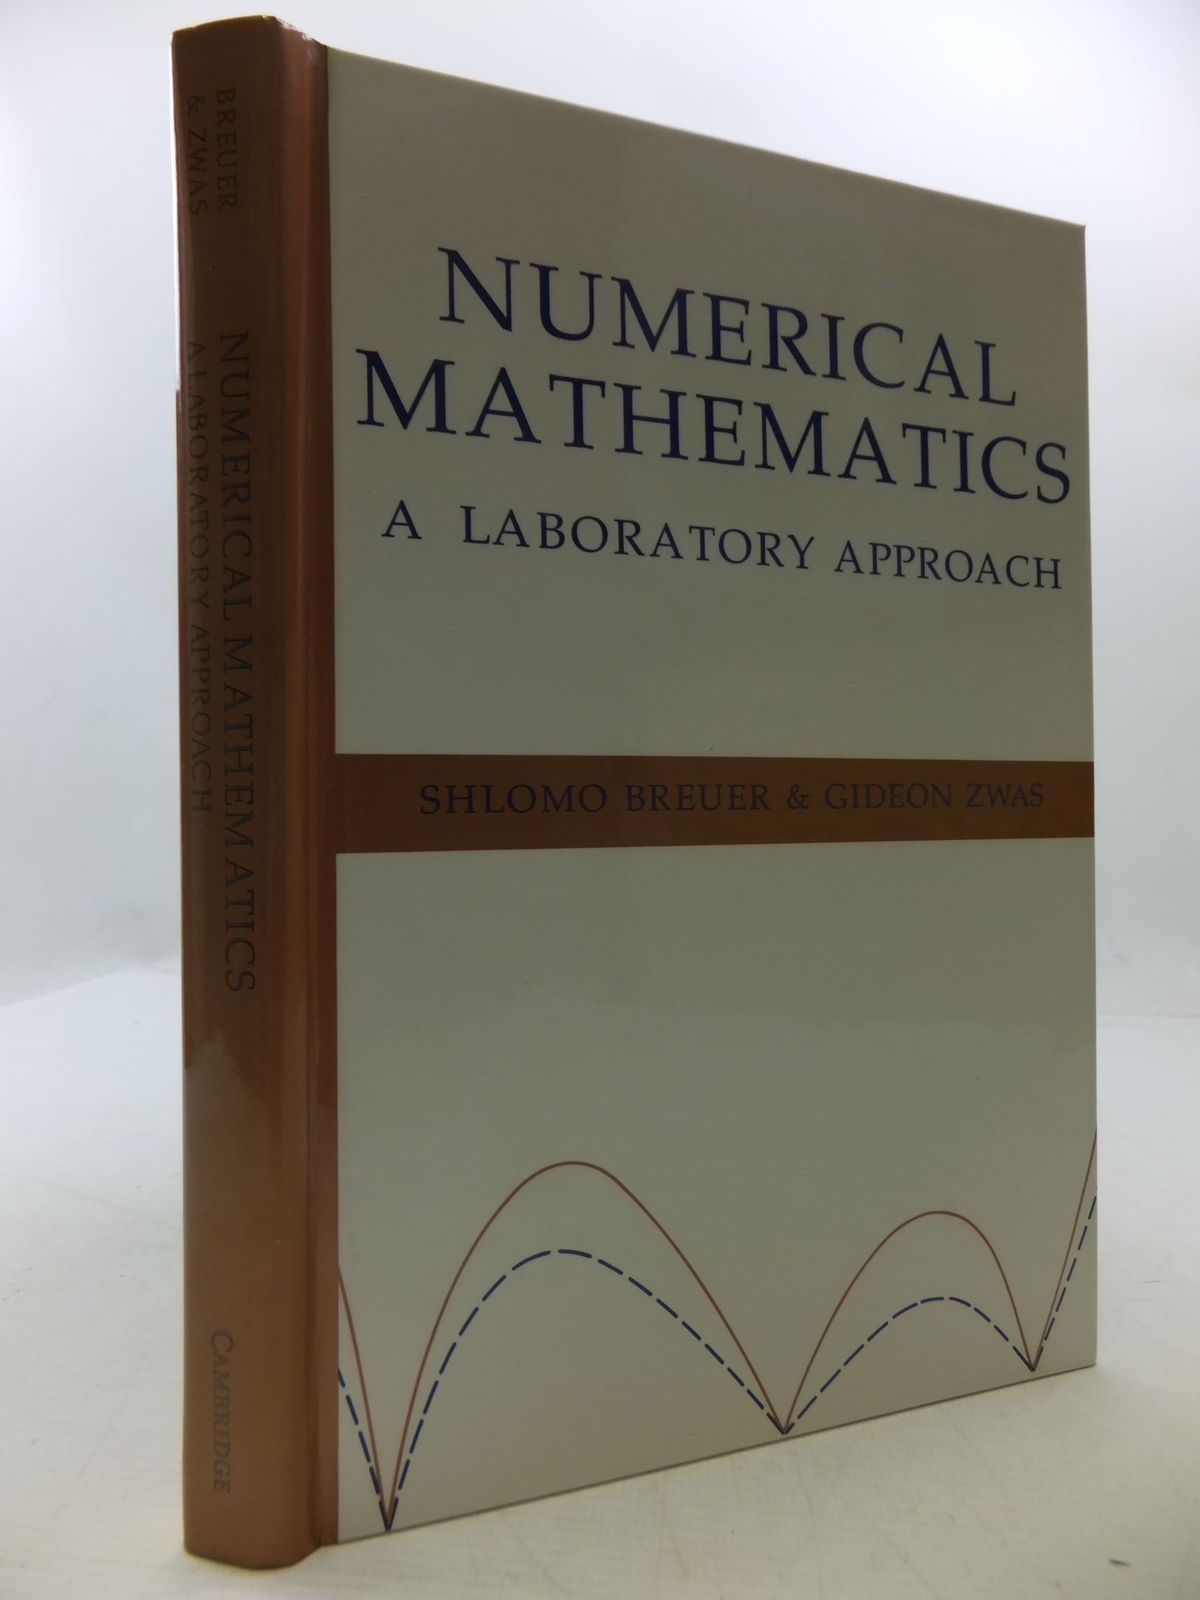 Photo of NUMERICAL MATHEMATICS A LABORATORY APPROACH written by Breuer, Shlomo<br />Zwas, Gideon published by Cambridge University Press (STOCK CODE: 1709335)  for sale by Stella & Rose's Books